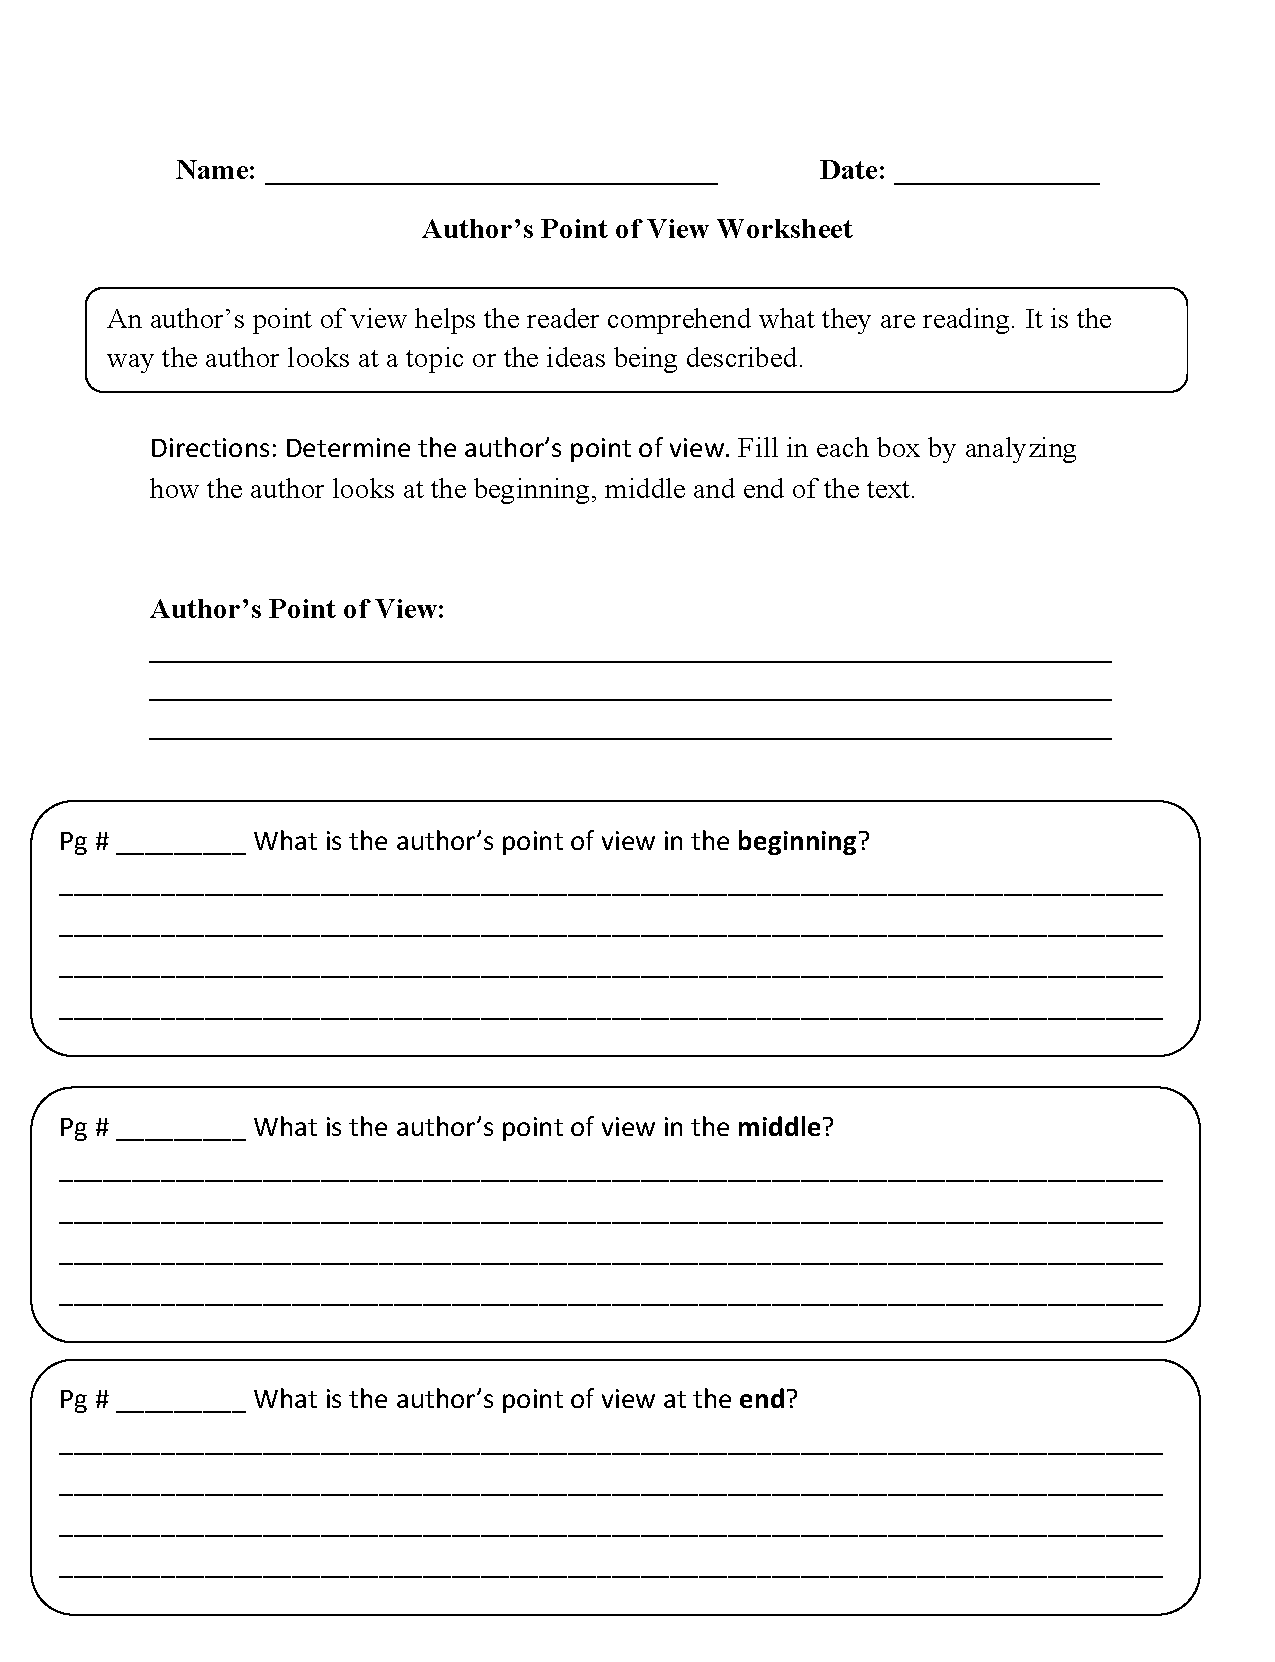 Proatmealus  Sweet Englishlinxcom  Point Of View Worksheets With Excellent Point Of View Worksheets With Alluring  Day Math Worksheets Also Printable Money Math Worksheets In Addition Ks Maths Worksheets And Sibelius Worksheets As Well As Online Worksheets For Grade  Additionally Cubic Equations Worksheet From Englishlinxcom With Proatmealus  Excellent Englishlinxcom  Point Of View Worksheets With Alluring Point Of View Worksheets And Sweet  Day Math Worksheets Also Printable Money Math Worksheets In Addition Ks Maths Worksheets From Englishlinxcom